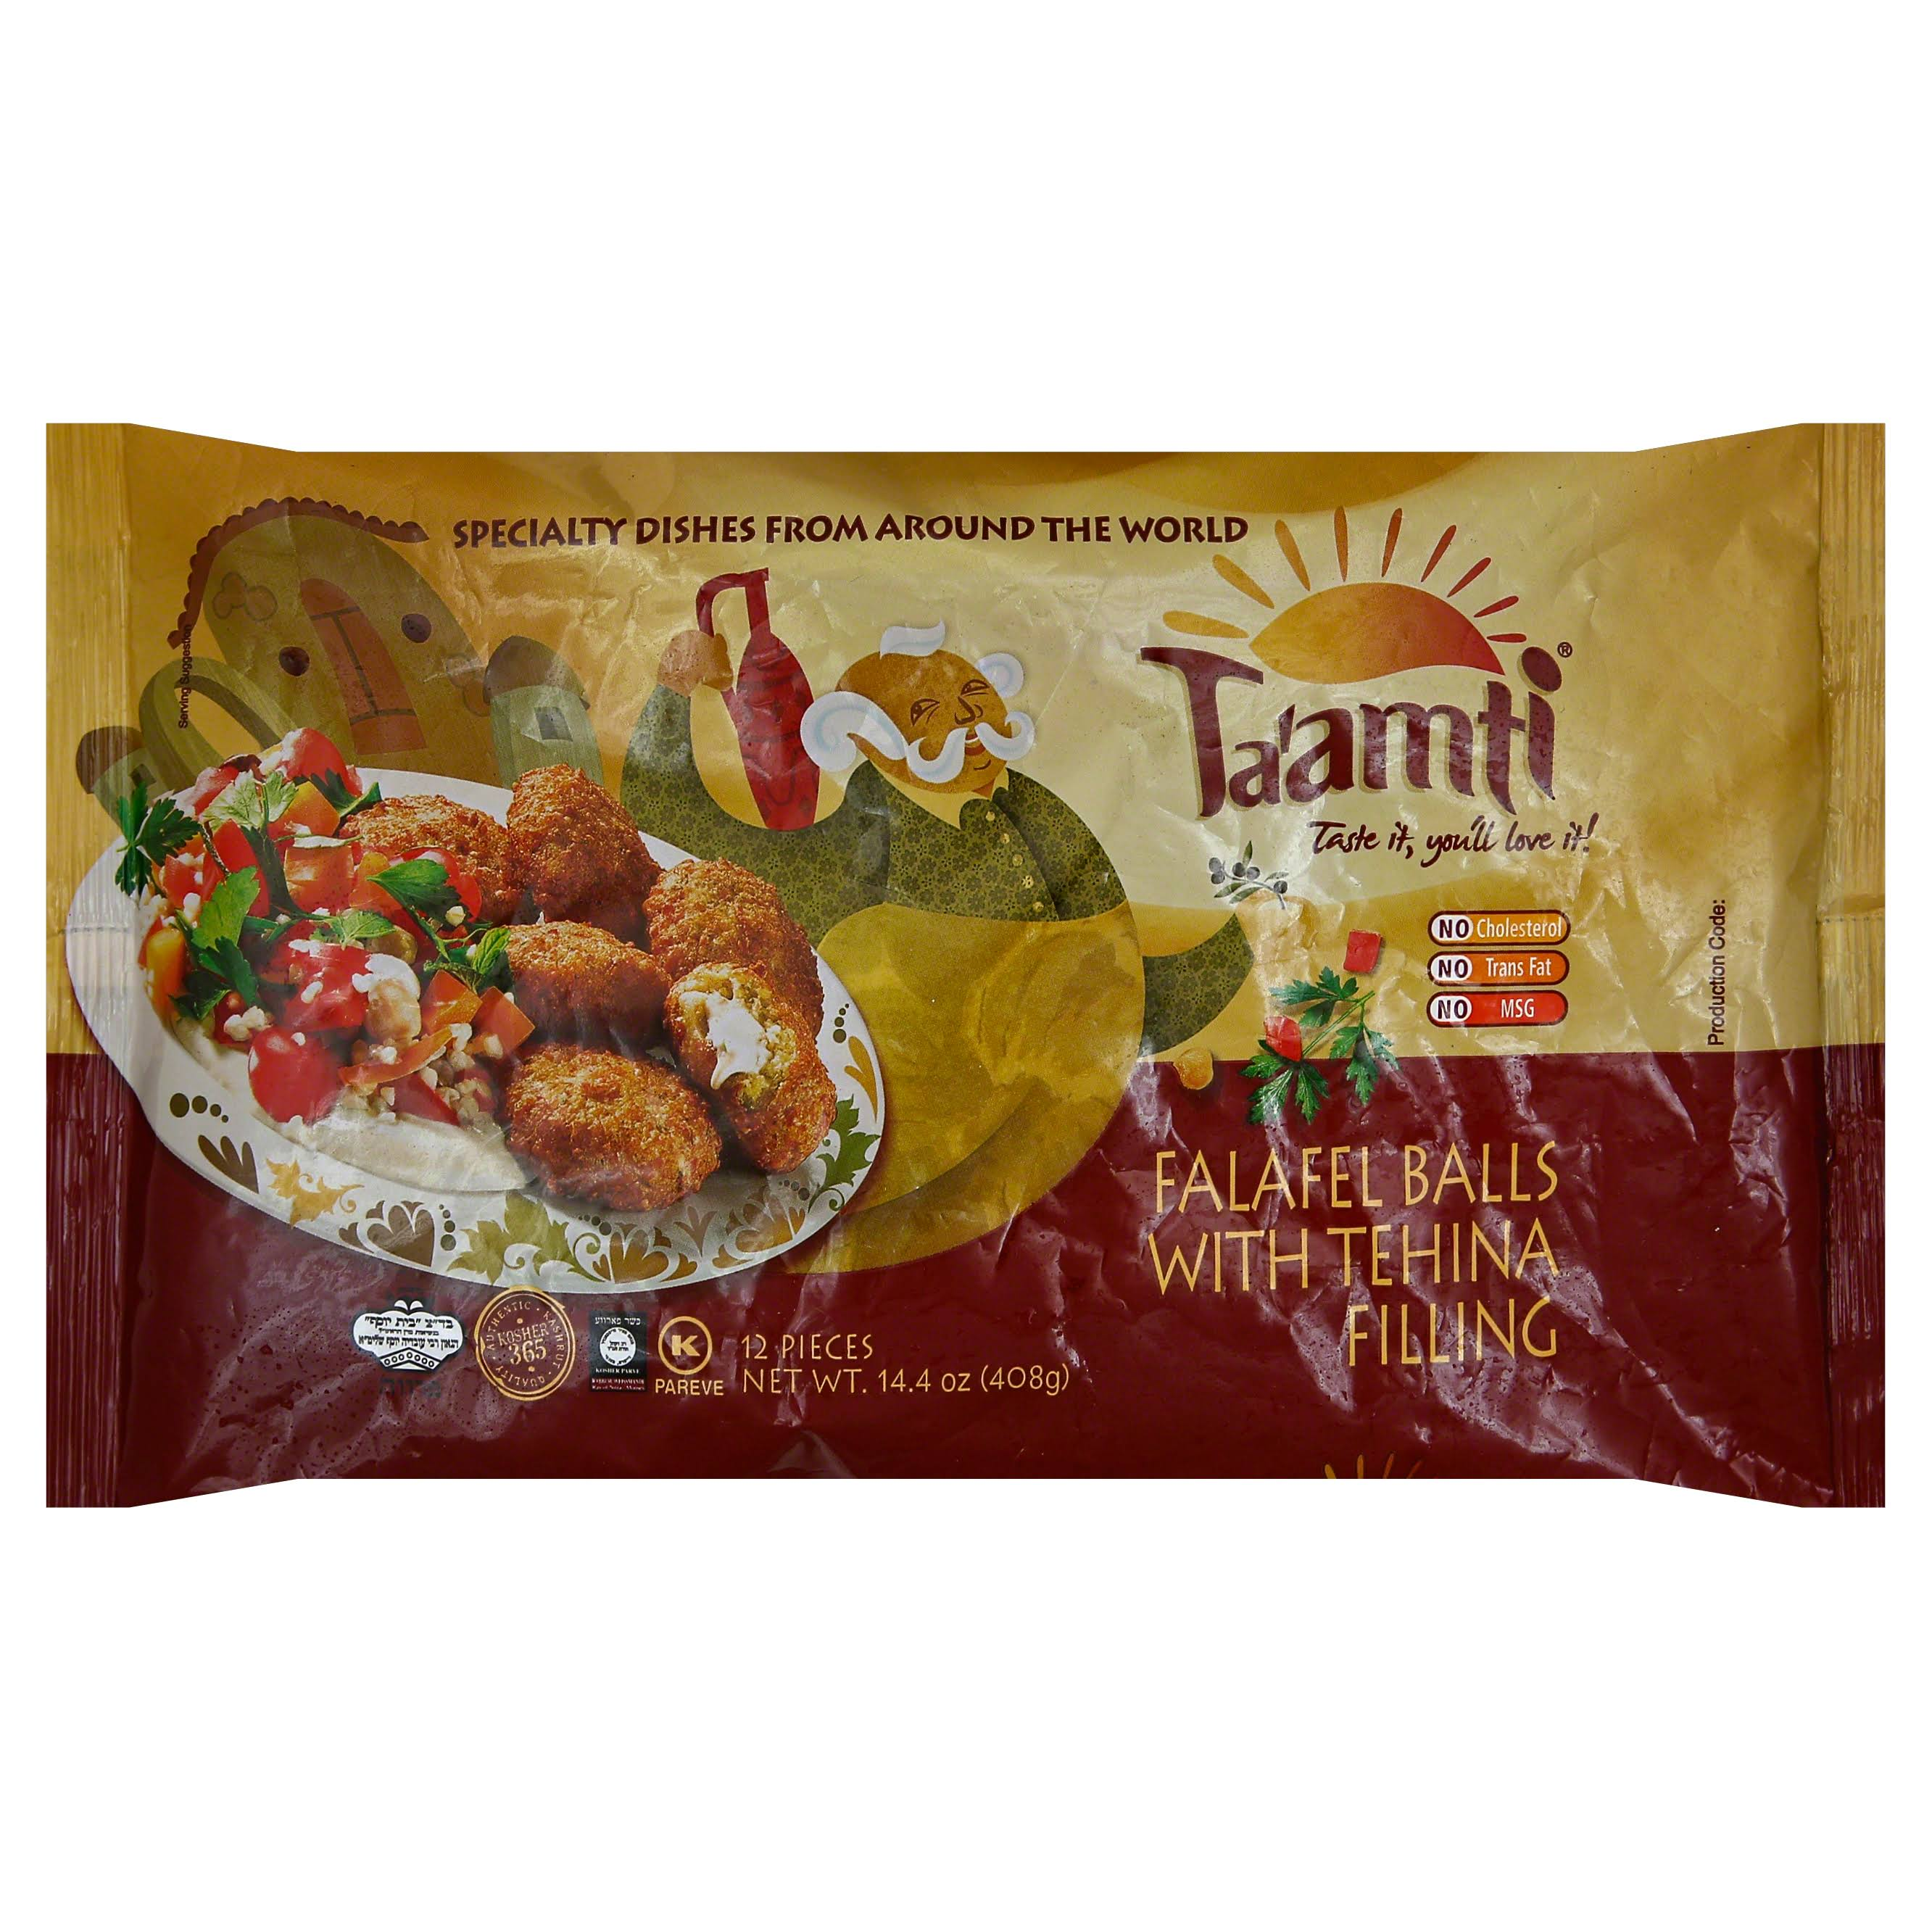 Taamti Falafel Balls, with Tehina Filling - 12 pieces, 14.4 oz